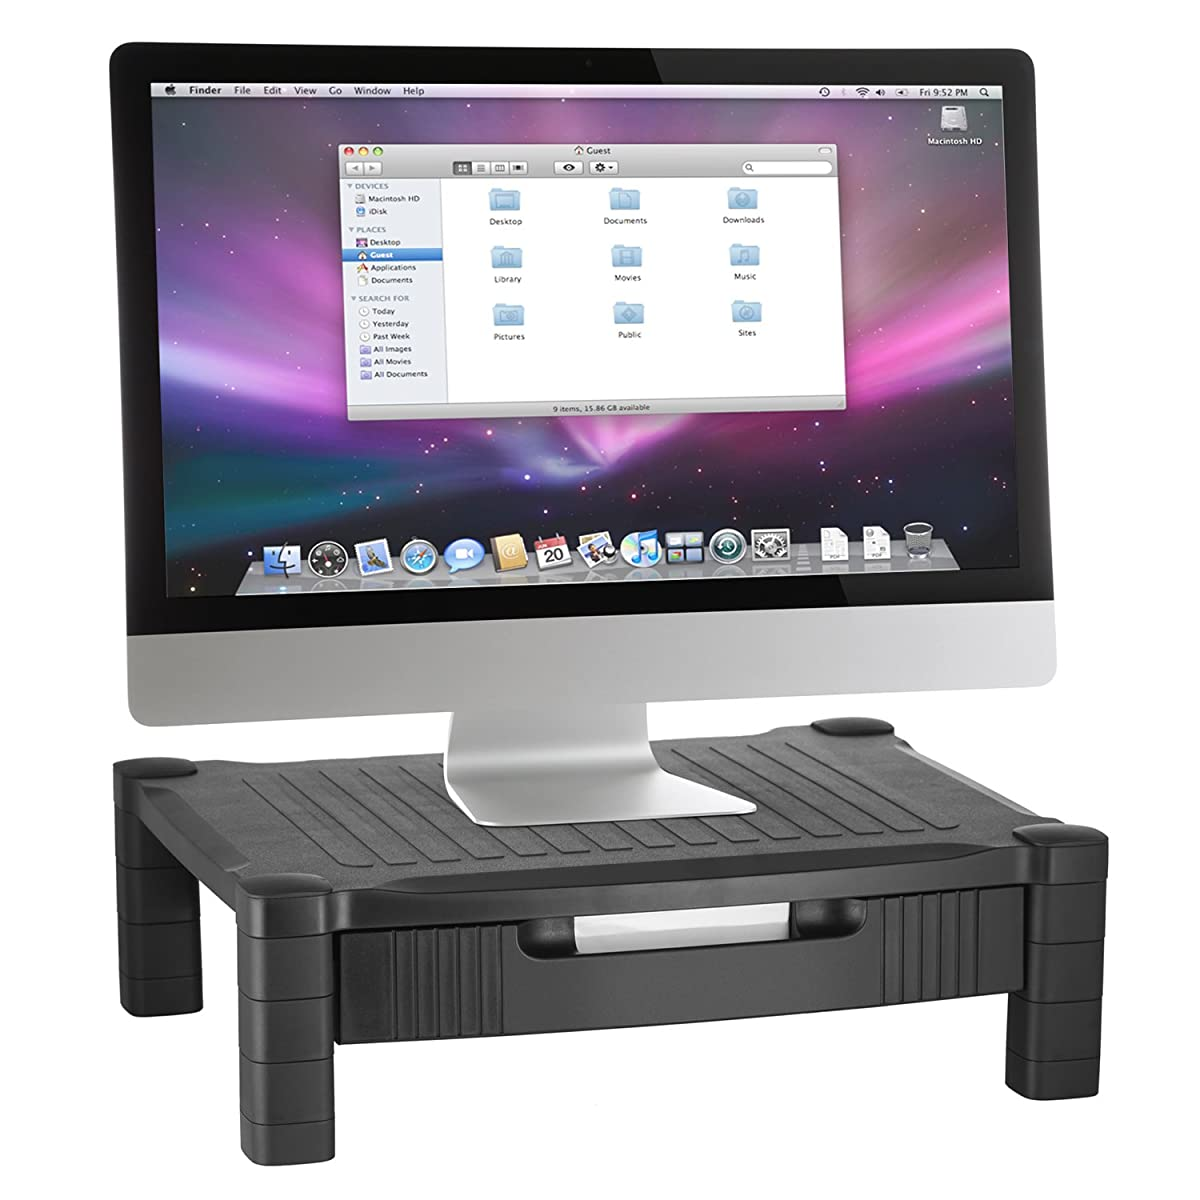 Halter 2 Pack of LZ-302A Monitor Stand/Monitor Riser with Pull Out Drawer and Cable Management - Black